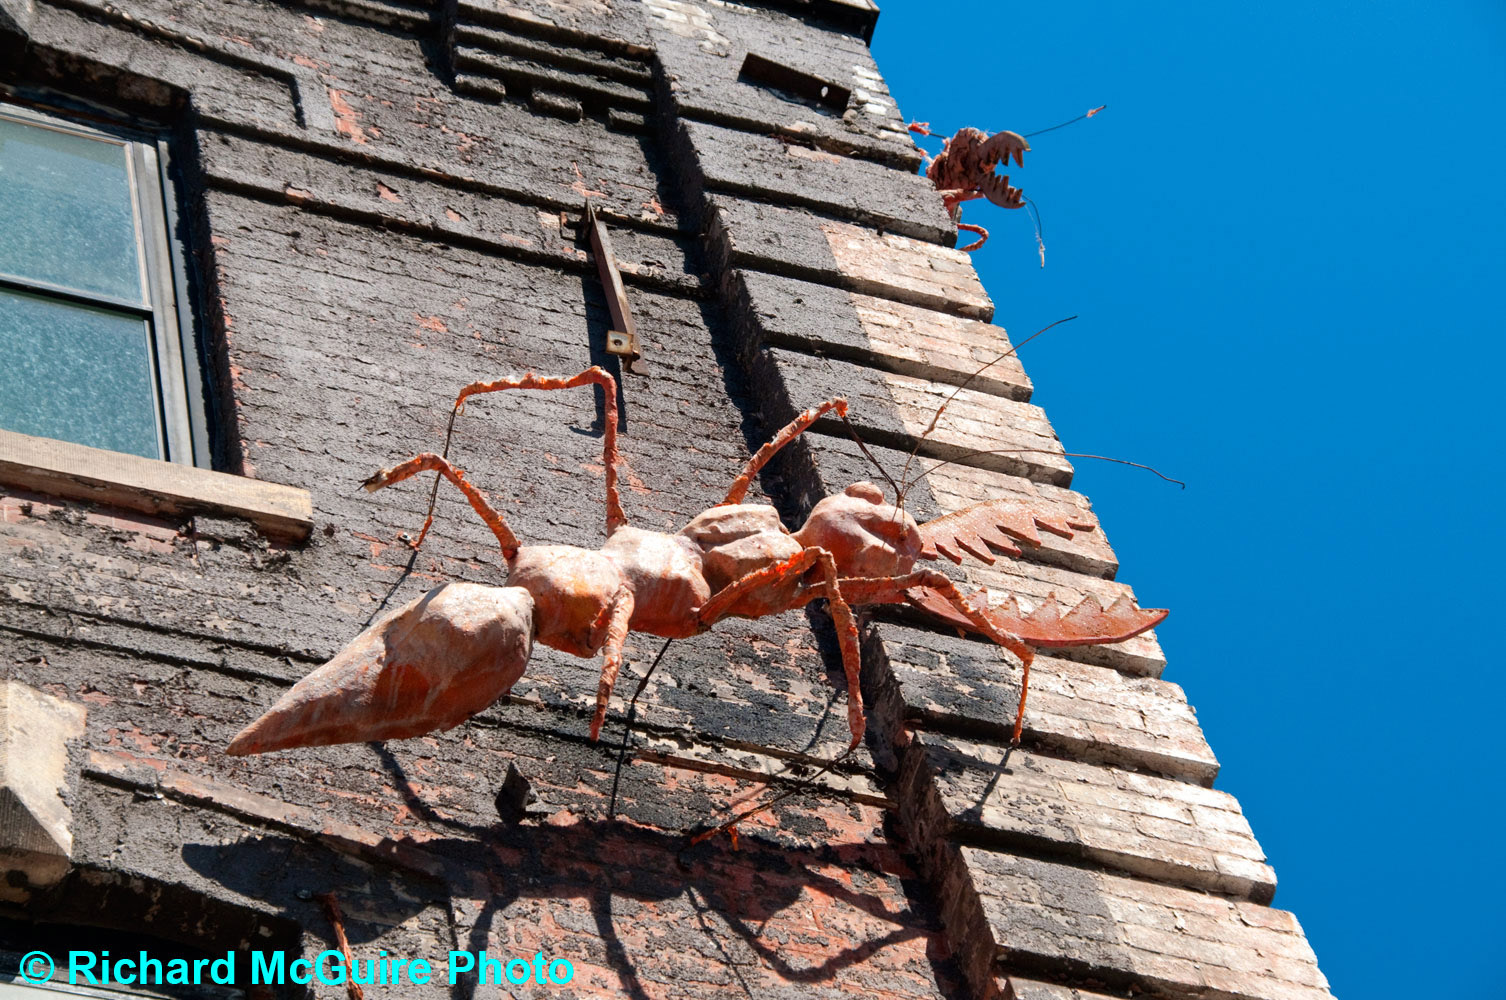 Giant insect, Queen Street, Toronto